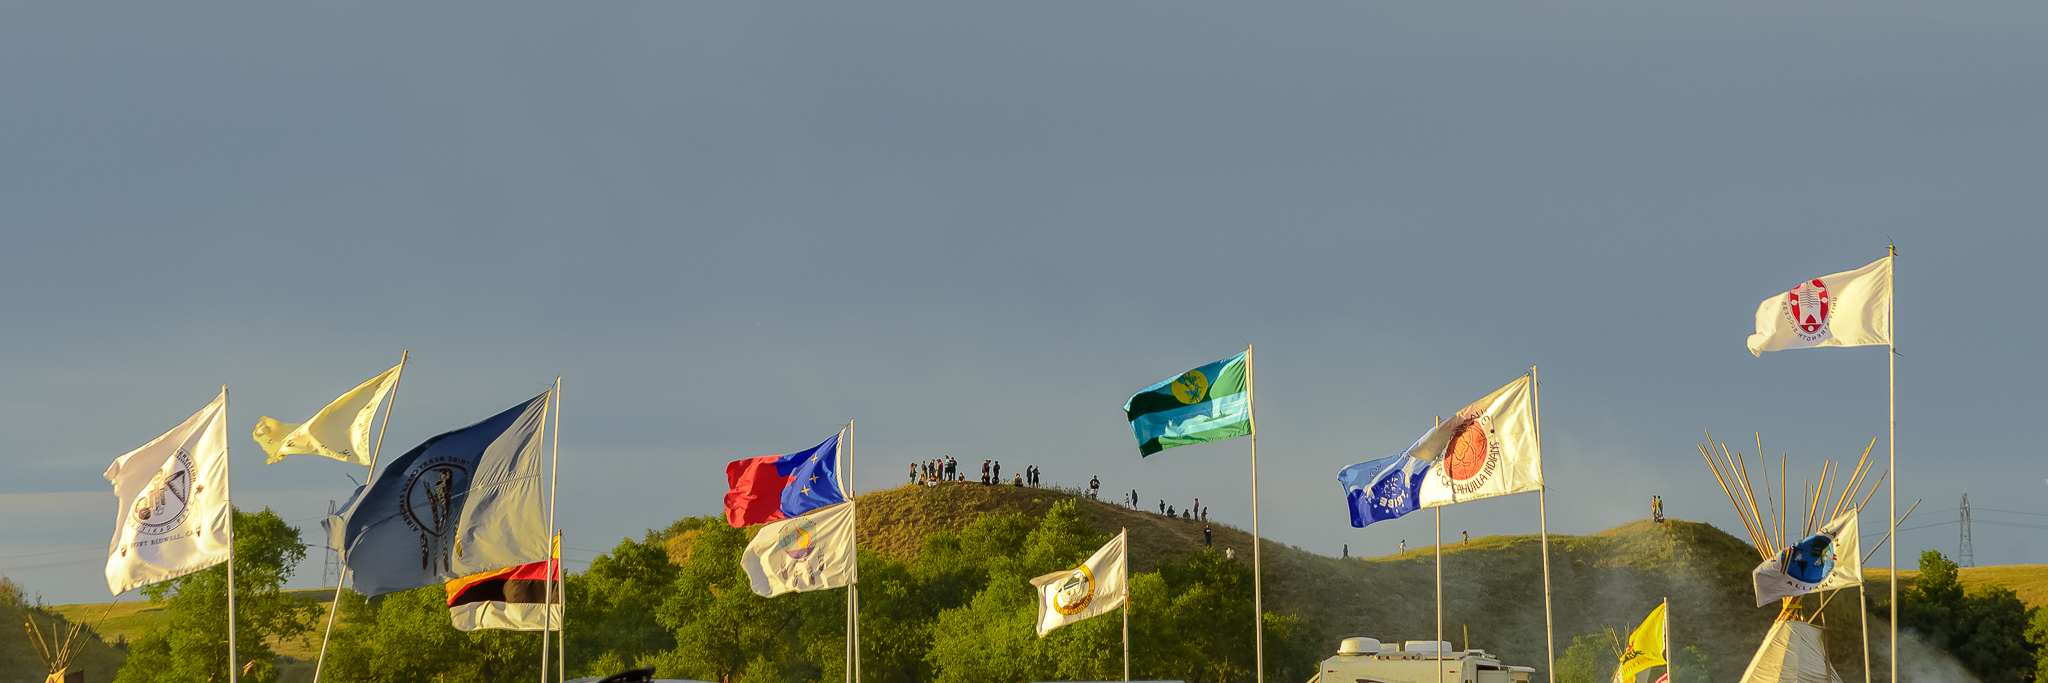 Over 200 flags flew at Standing Rock, each representing a Native Nation in attendance. Standing Rock Reservation Area, ND.